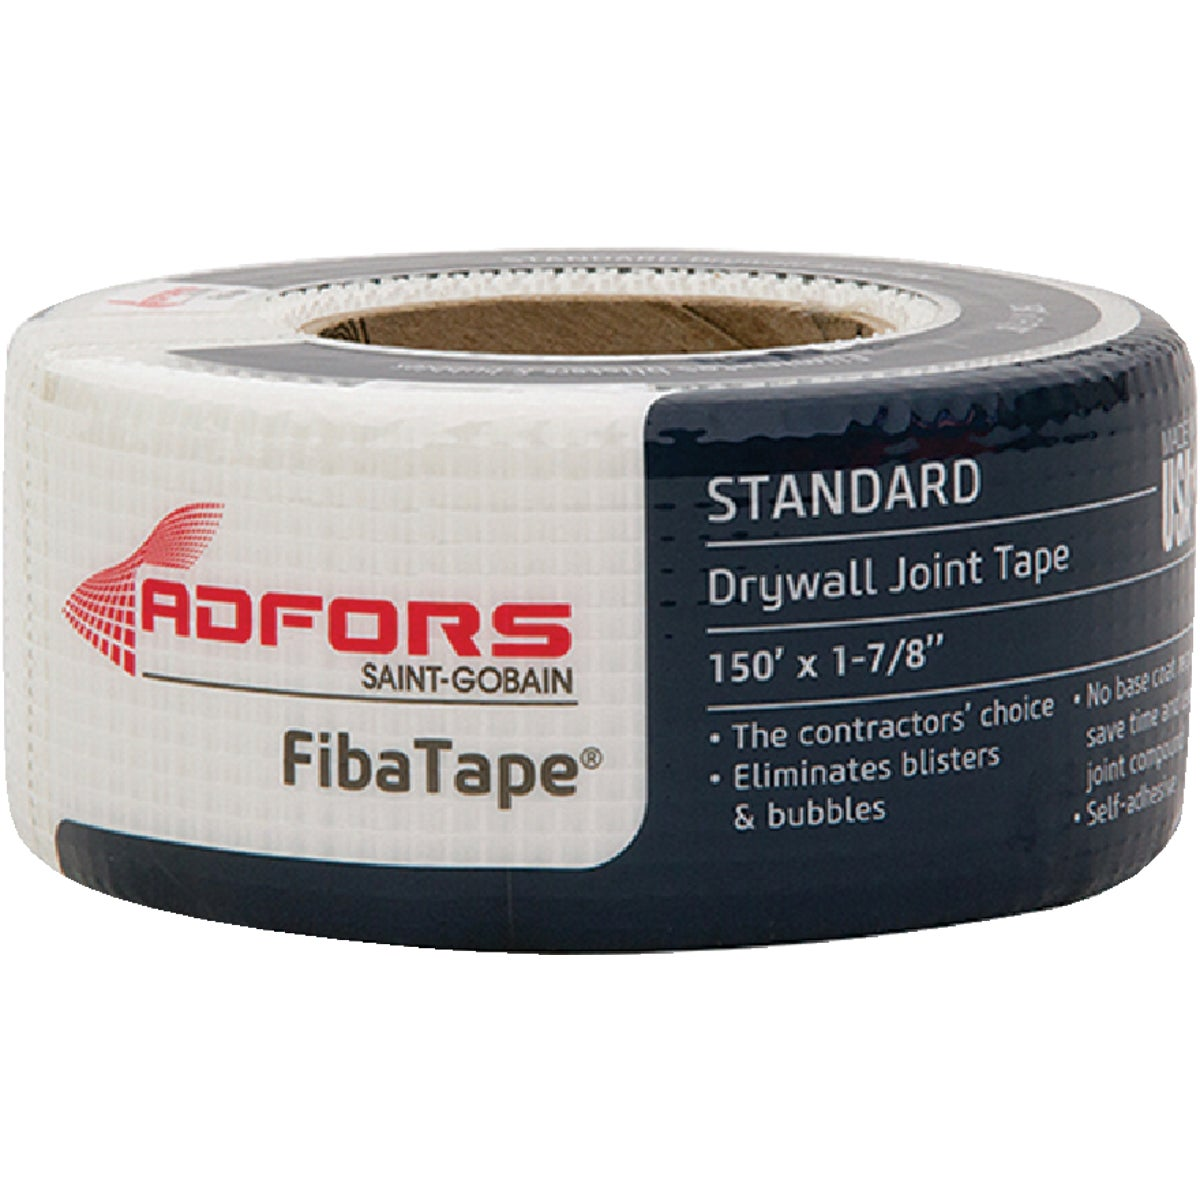 150' FBGLS DRYWALL TAPE - FDW6578-U by Saint Gobain